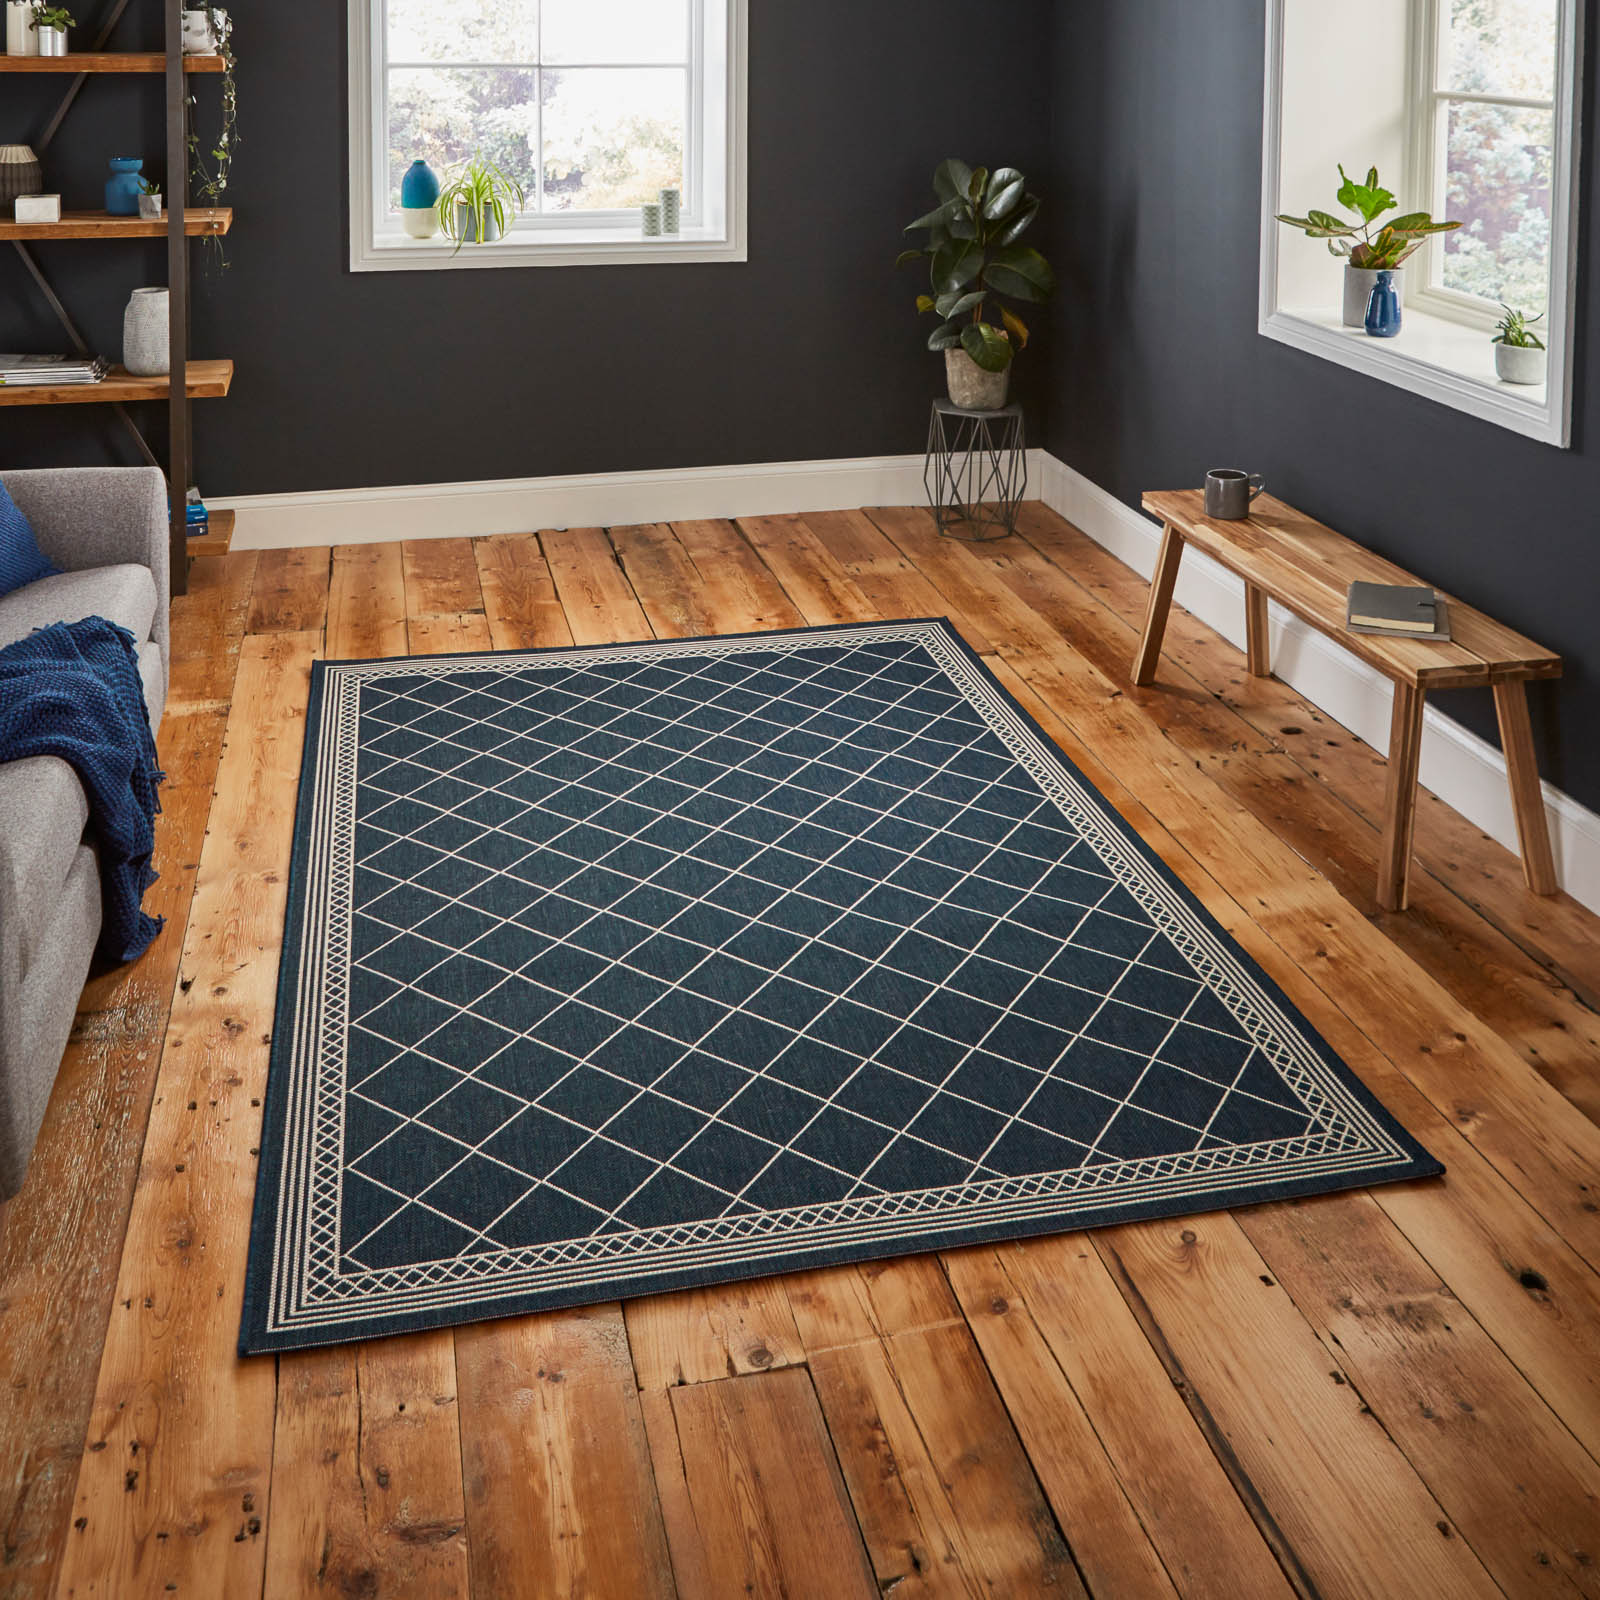 Modern Kitchen Rugs: Modern Kitchen Rugs With FREE UK Delivery